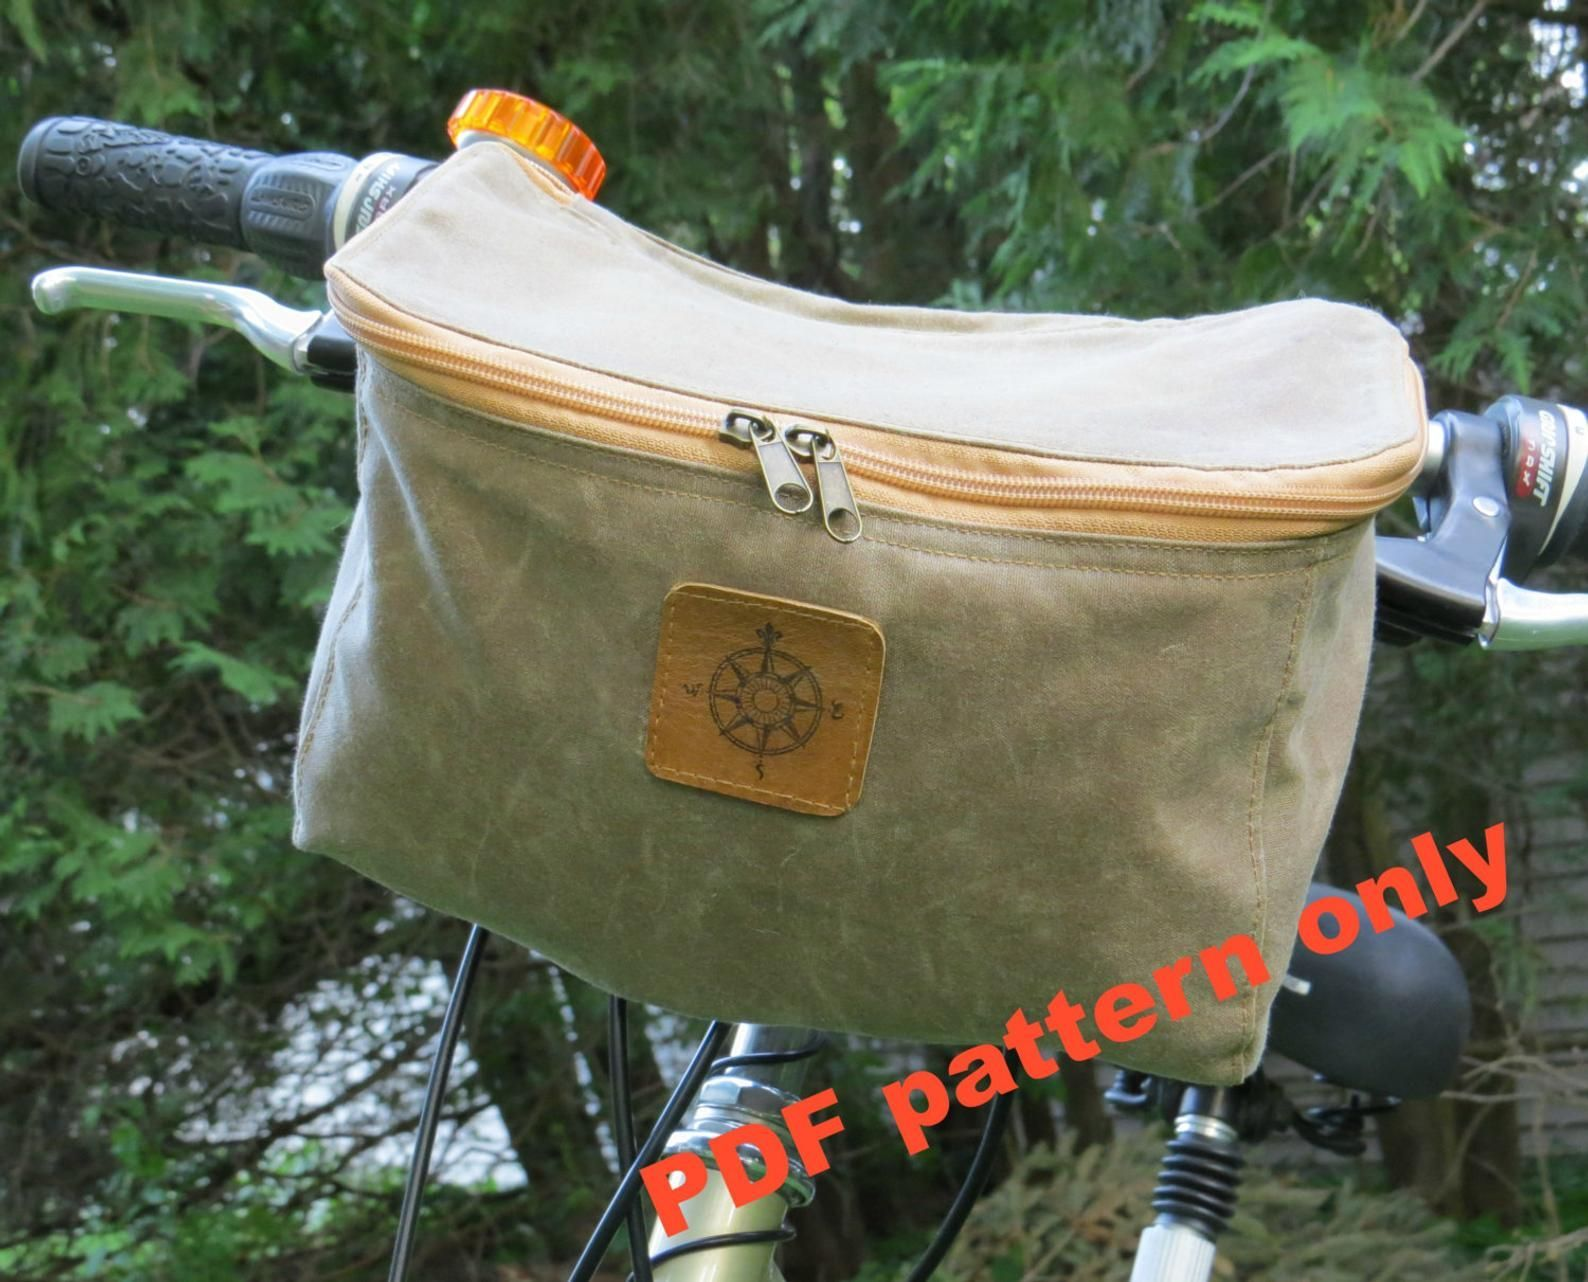 Good No Cost Sewing Pattern Bicycle Bag Pattern Pdf Pattern Handlebar Bag Pattern Bike Bag Pa Bicycle Bag Pattern Handlebar Bag Pattern Bag Patterns To Sew